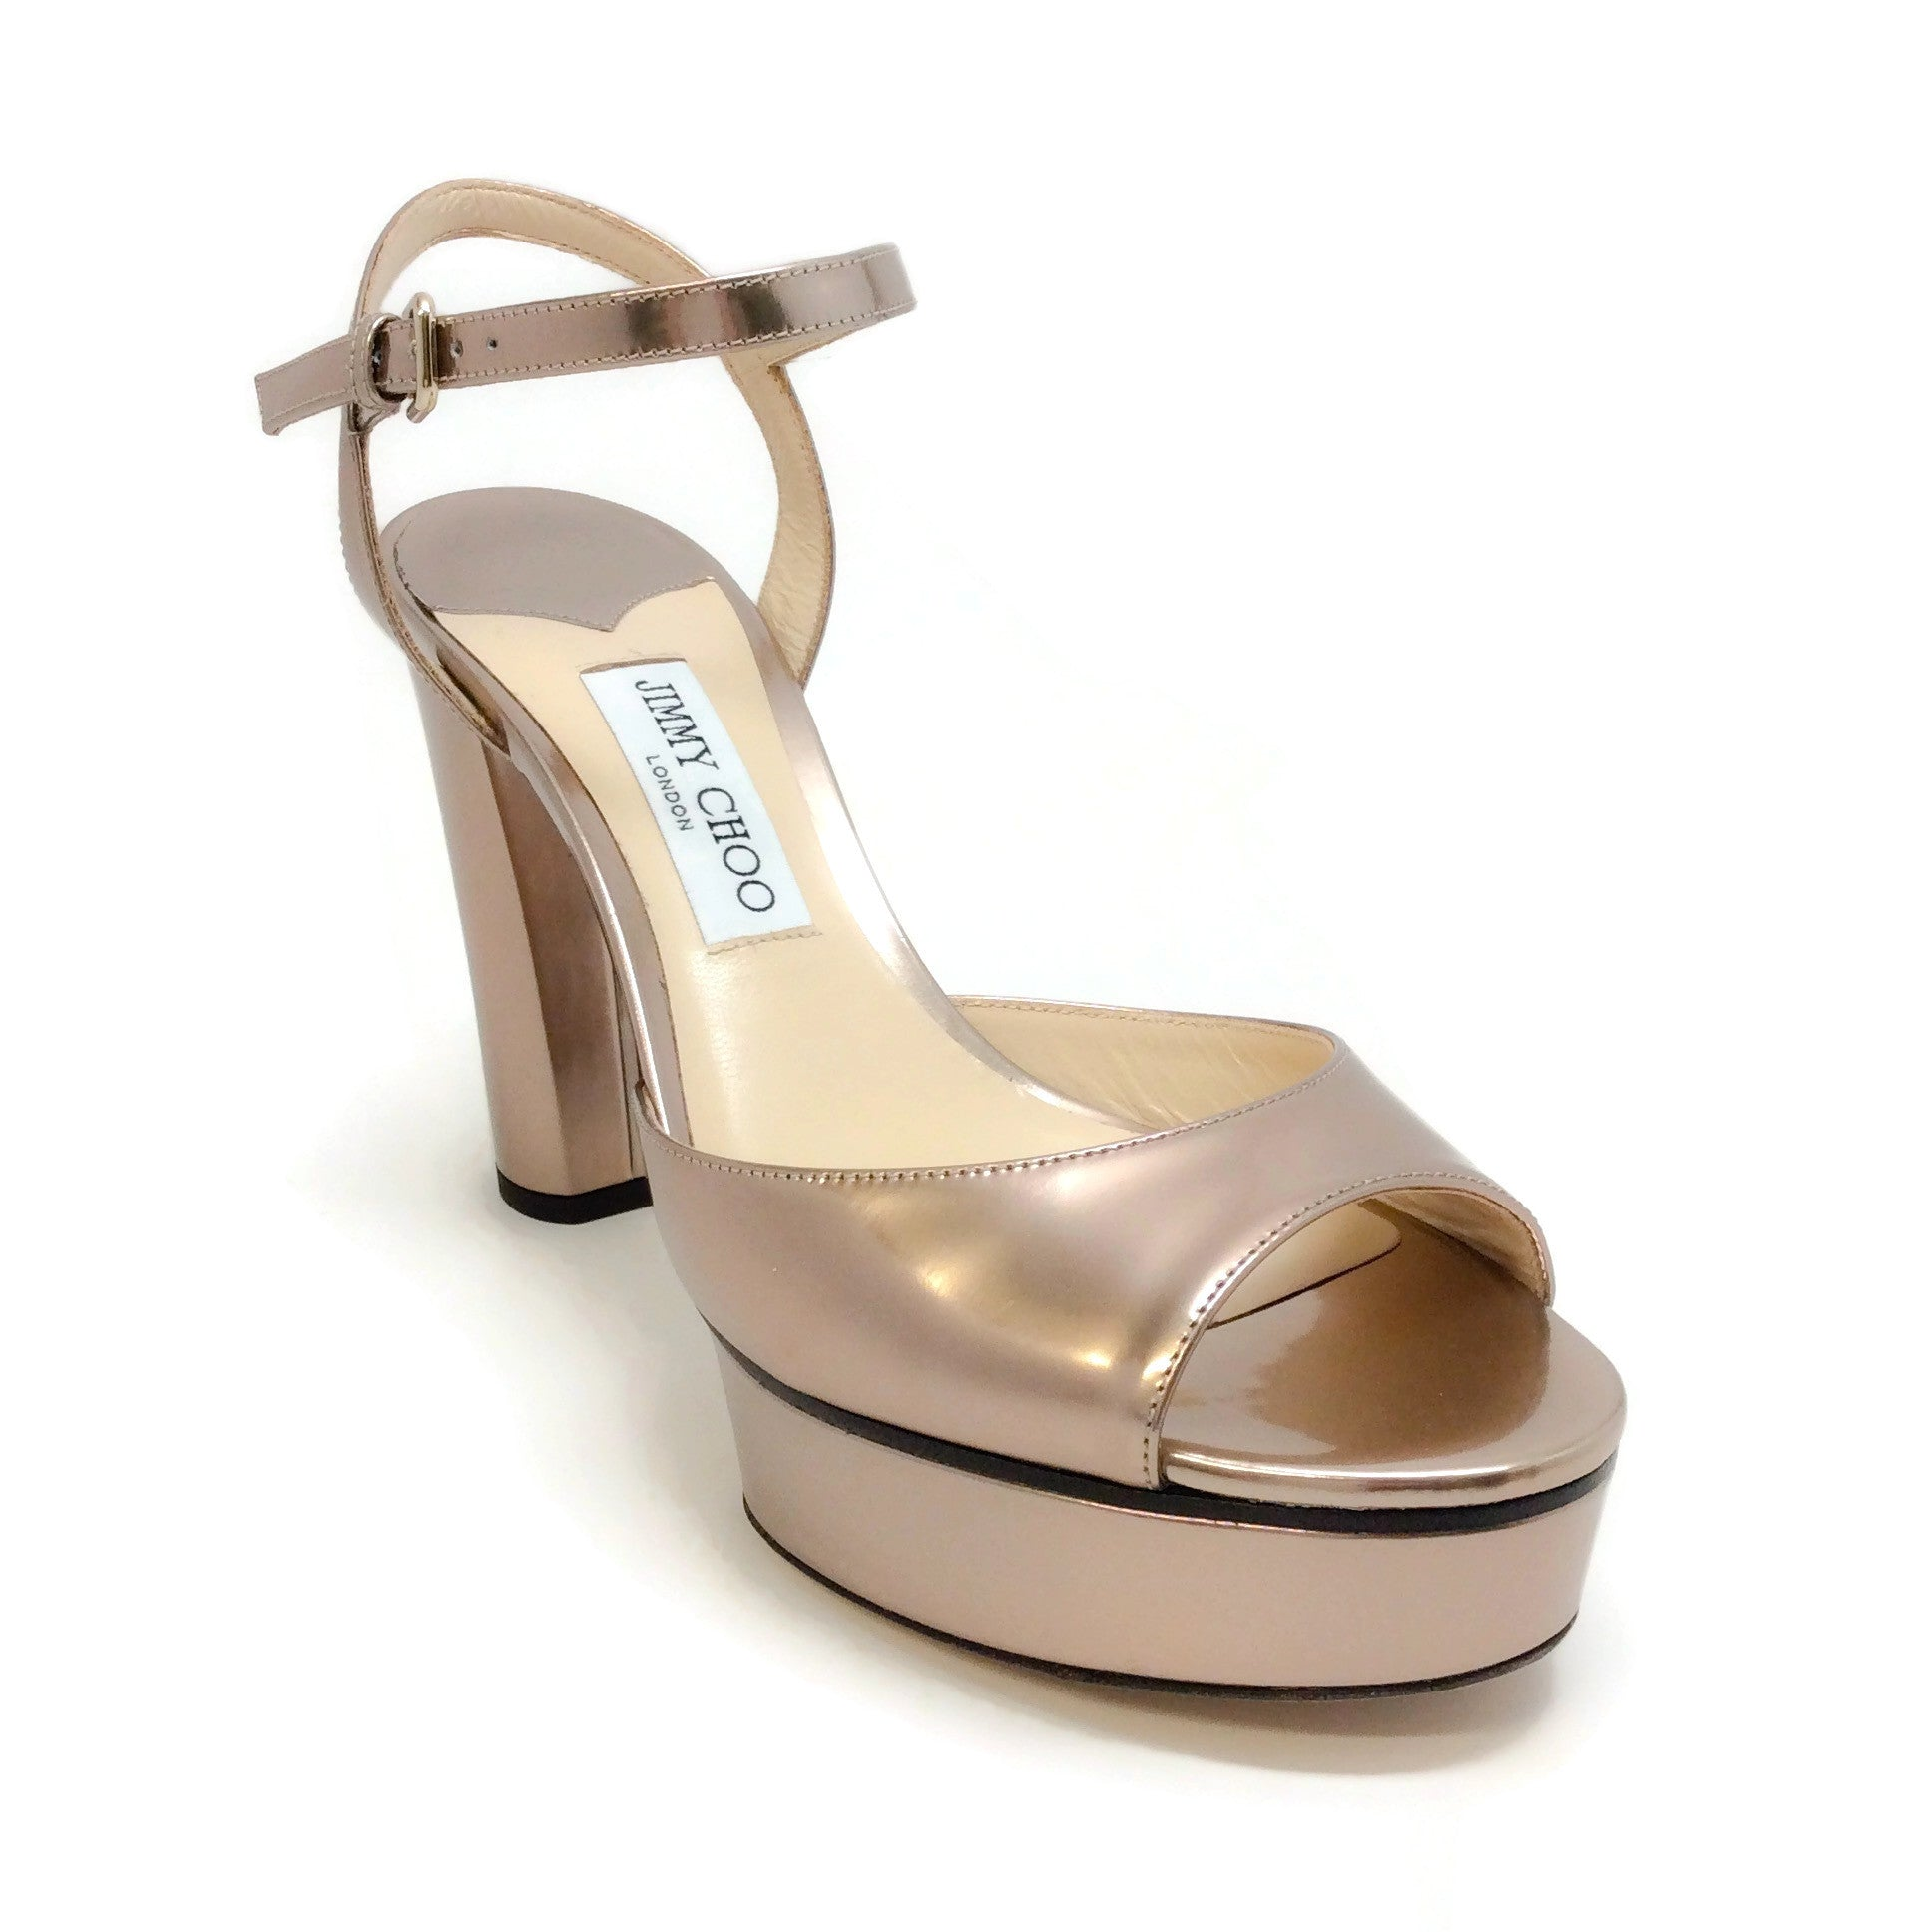 Jimmy Choo Rose Gold Peachy Platform Sandals